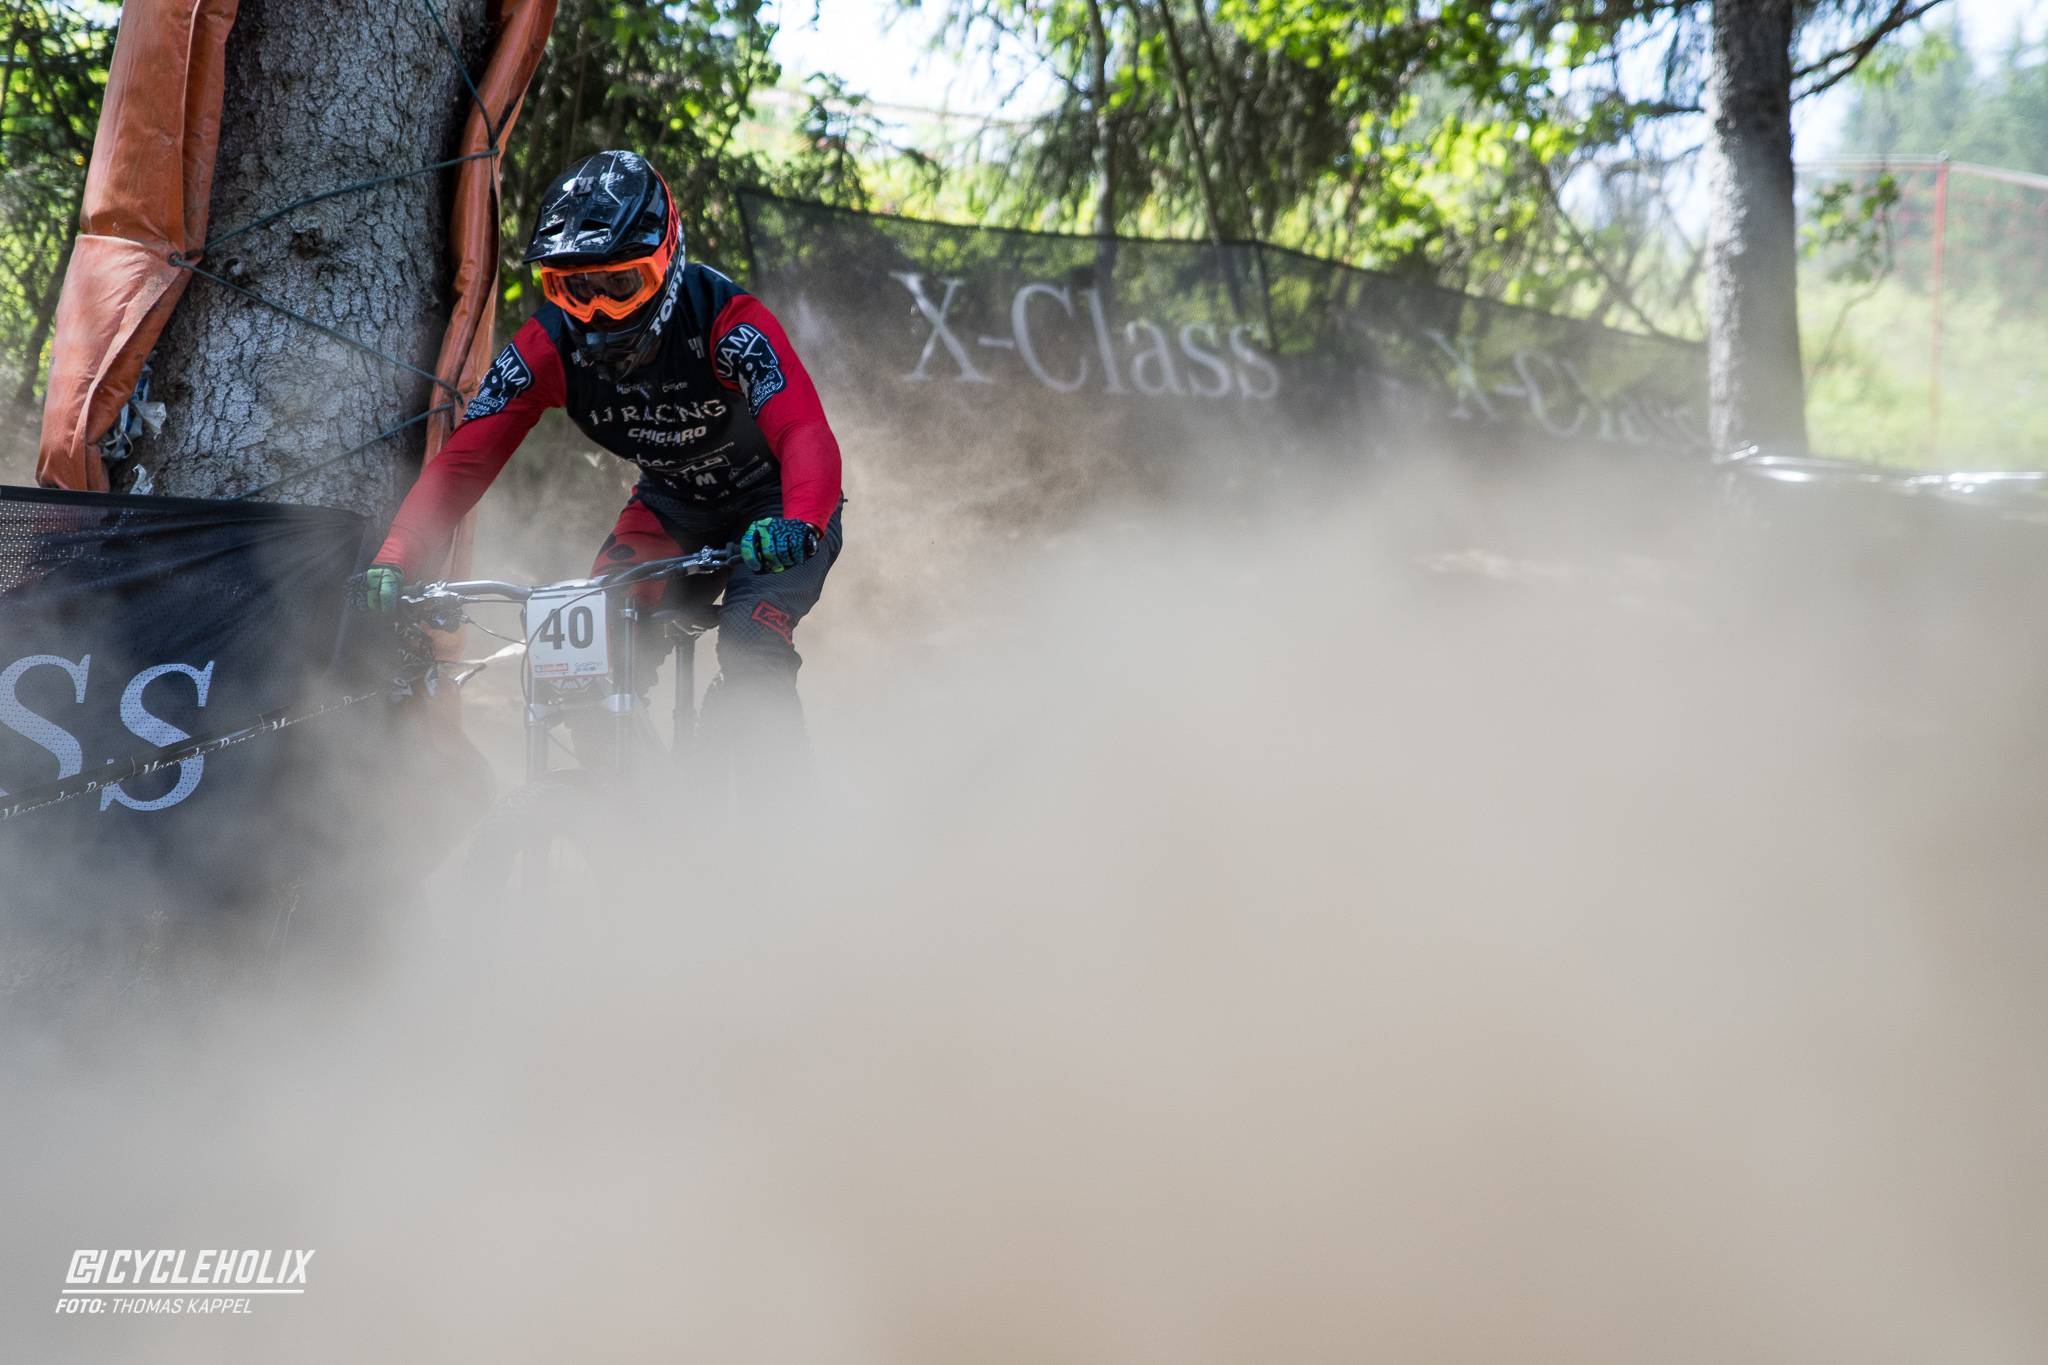 2019 Downhill Worldcup Leogang Finale Action 5 Cycleholix